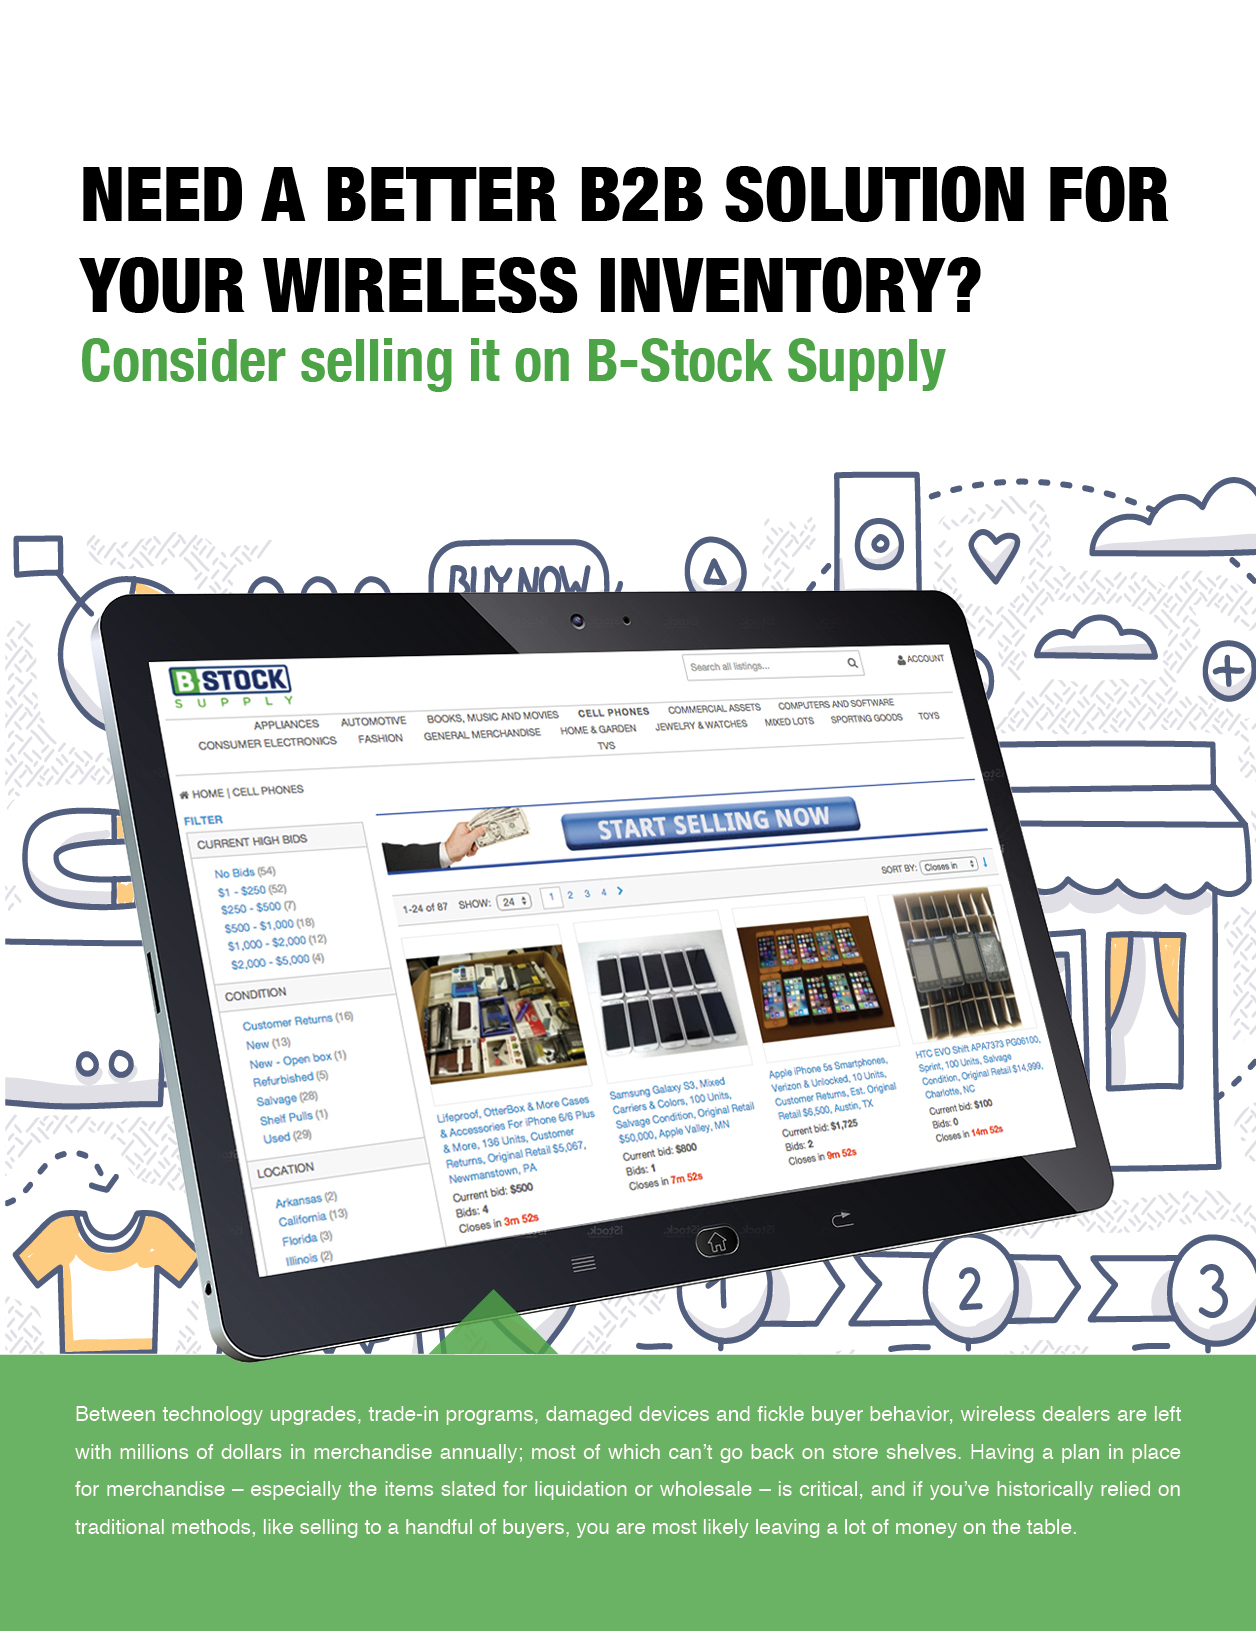 Need a Better Solution for your Wireless Inventory